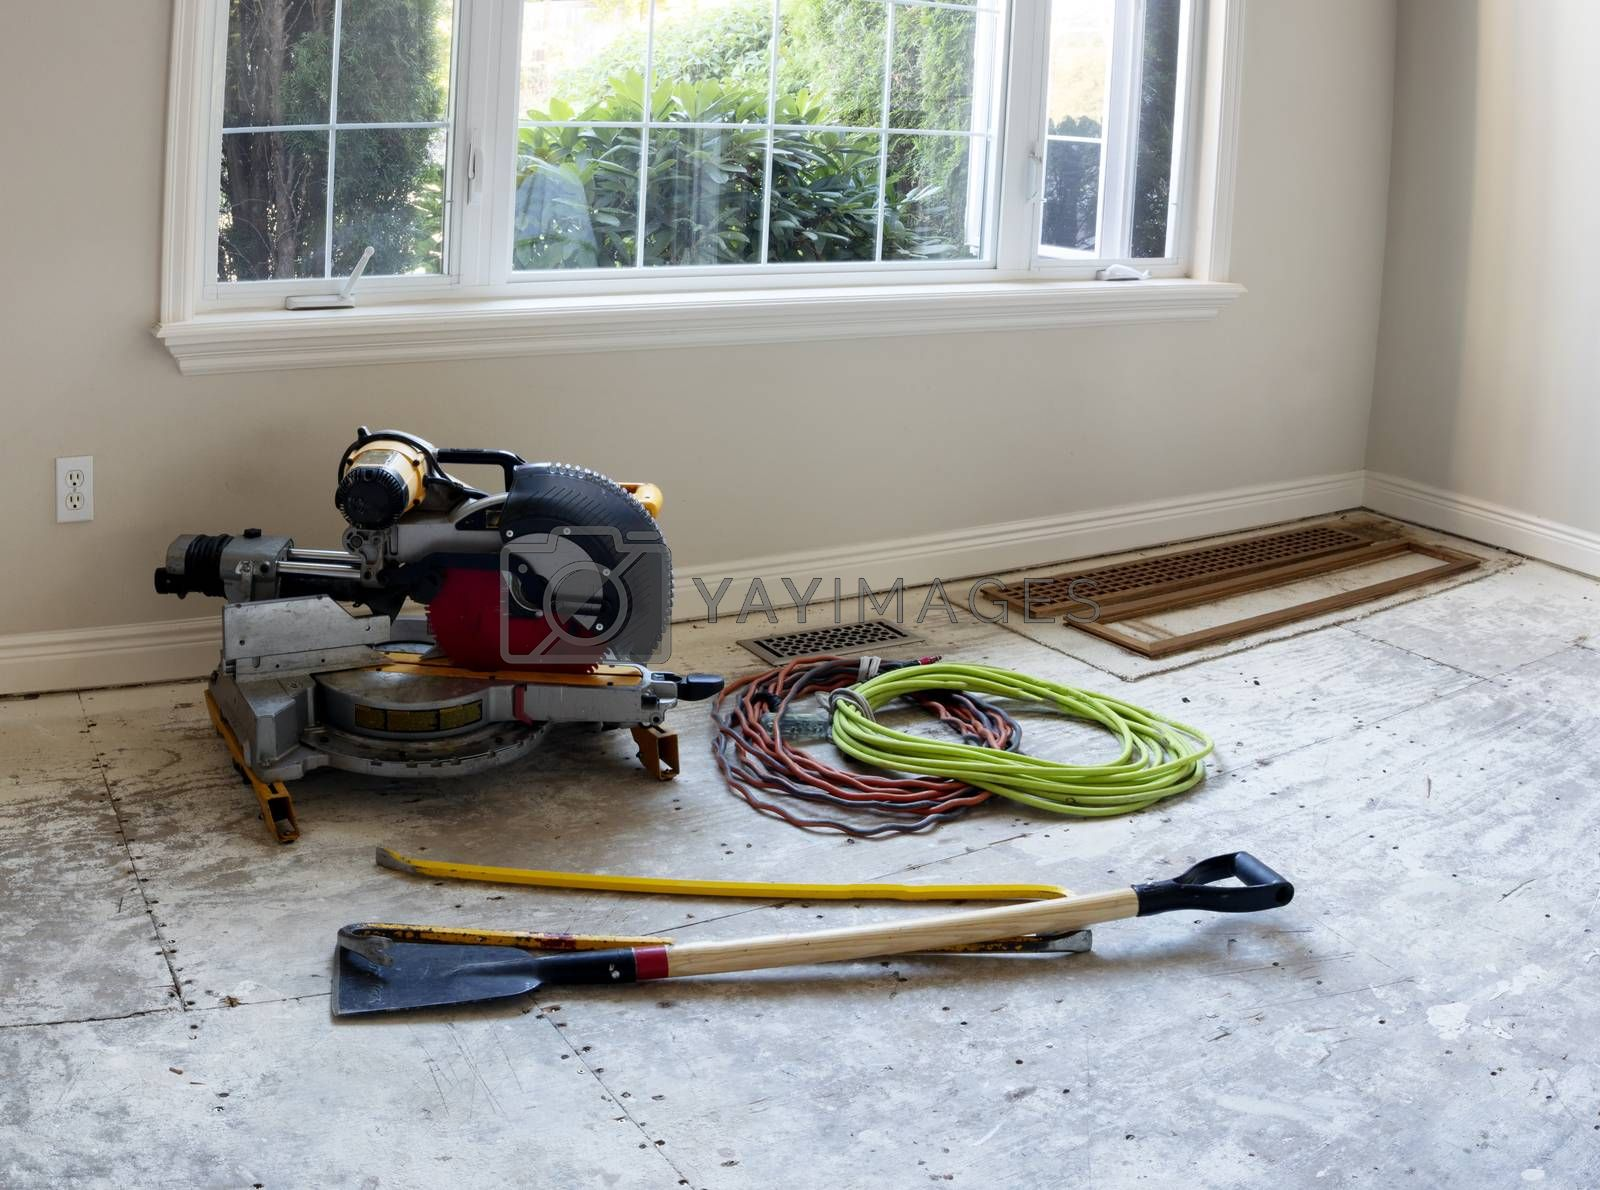 Floor stripped down to plywood with construction tools being prepared for new wood installation